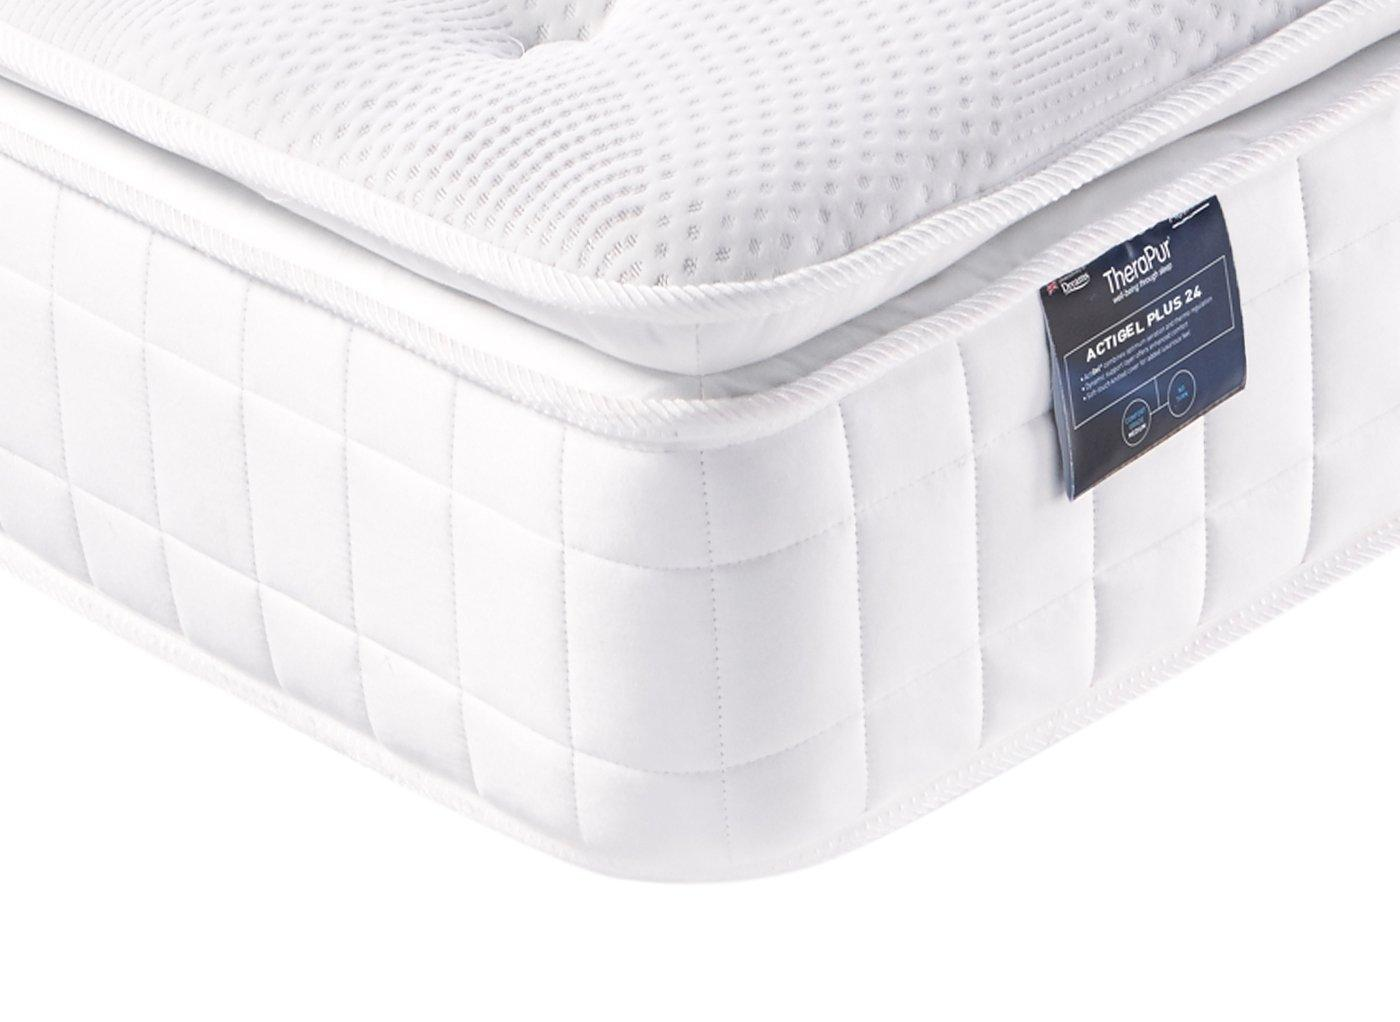 Therapur Actigel Plus 24 Mattress - Medium Firm